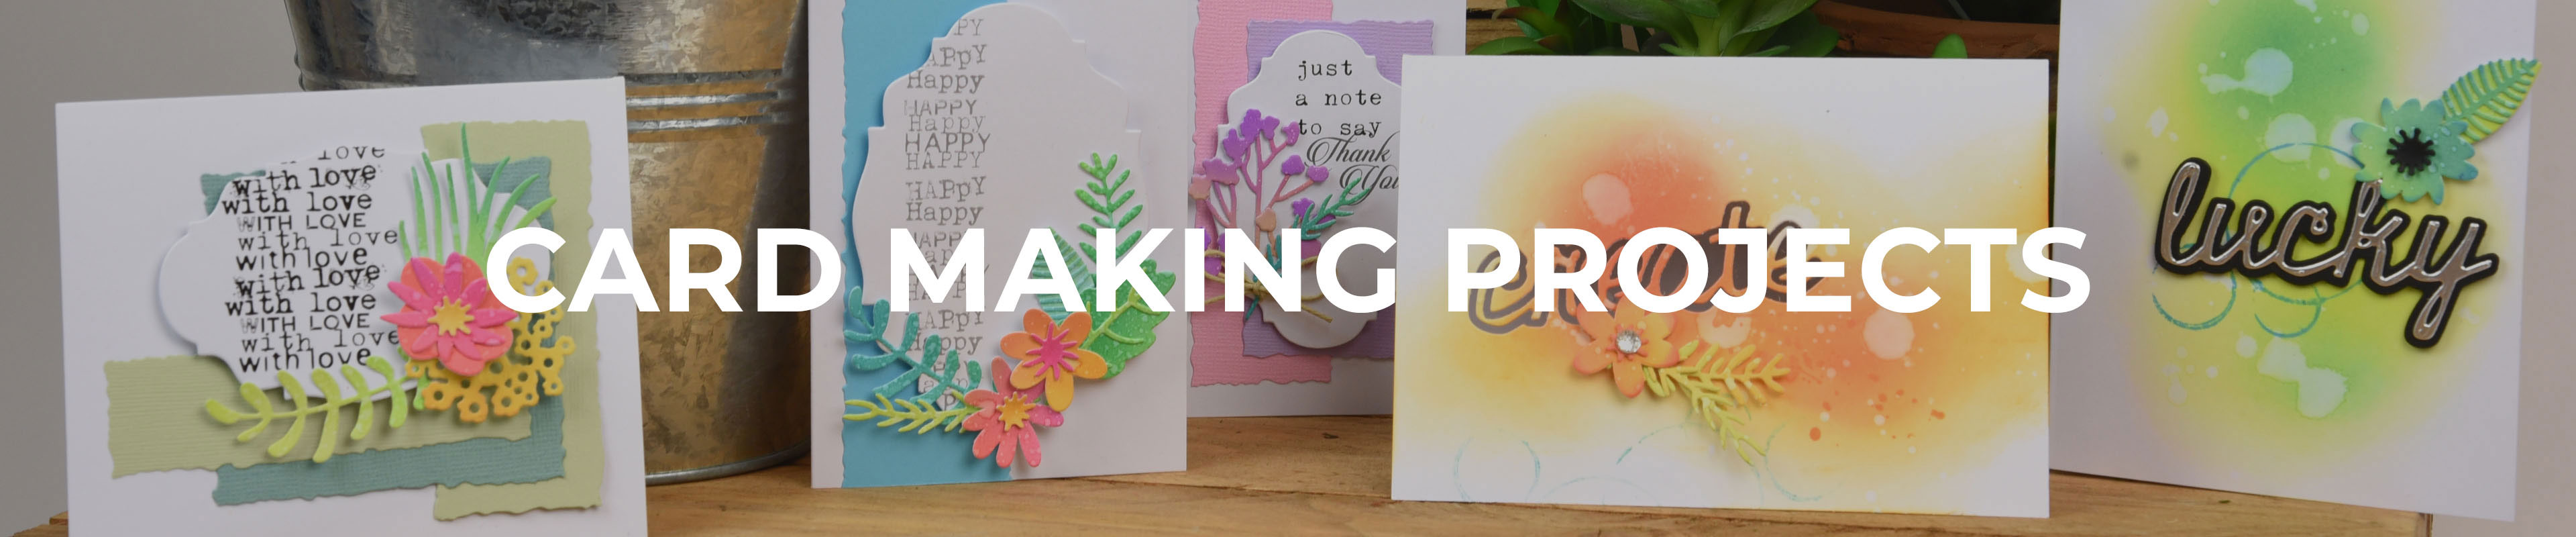 Card Making Projects